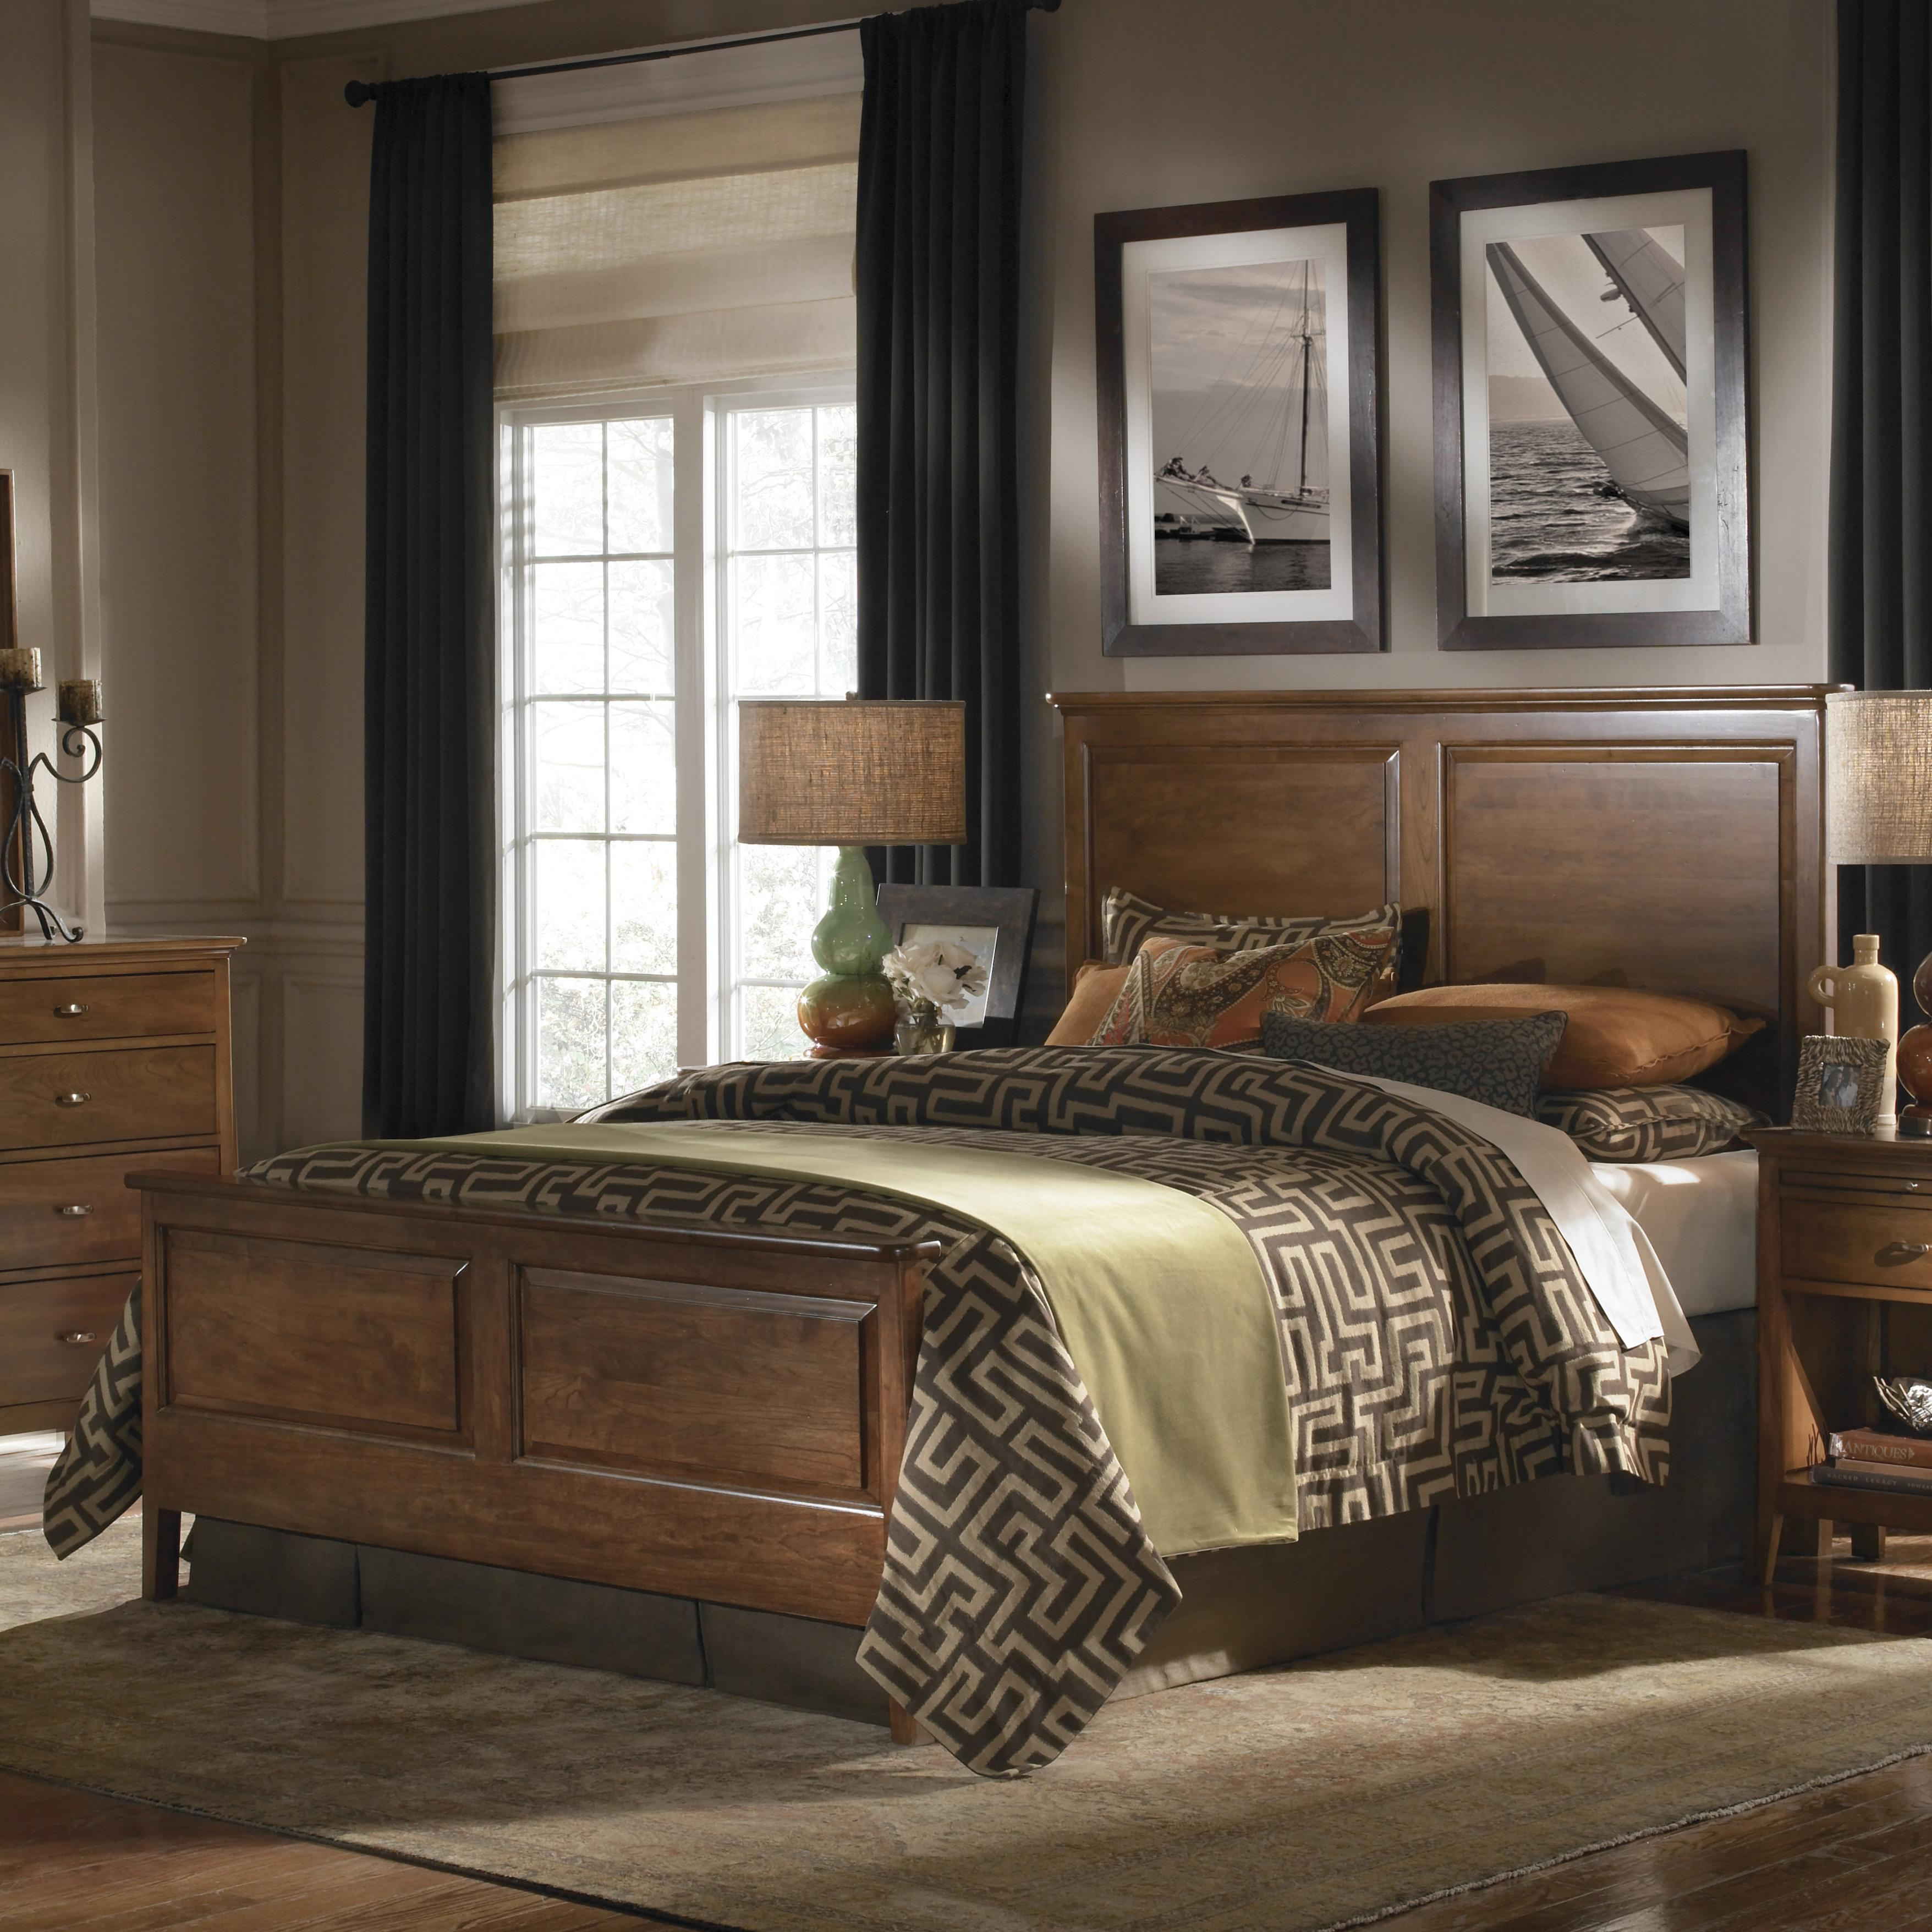 Cherry Park Queen Panel Bed by Kincaid Furniture at Johnny Janosik